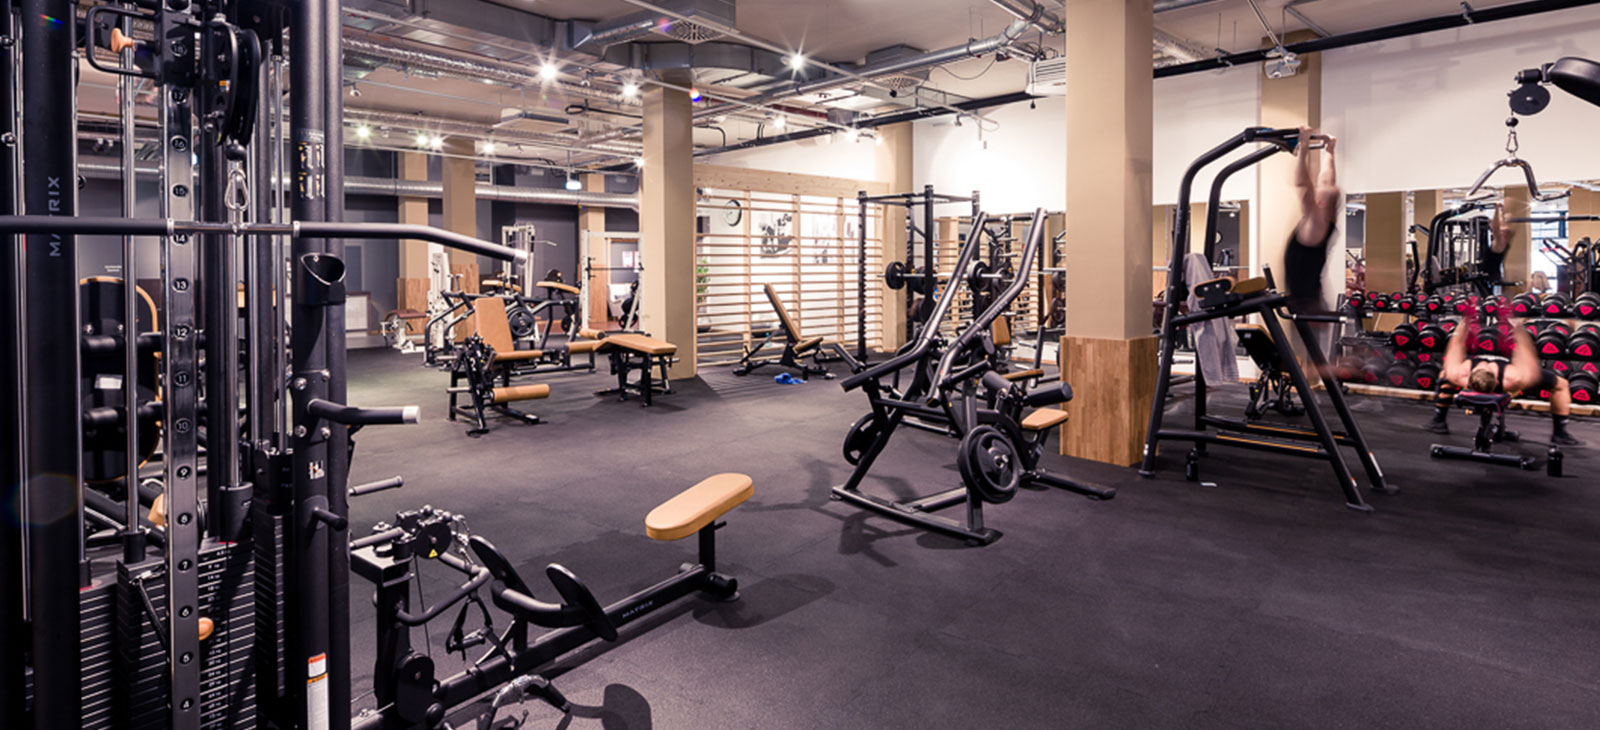 Freies-Training-im-Fitness-Loft-West